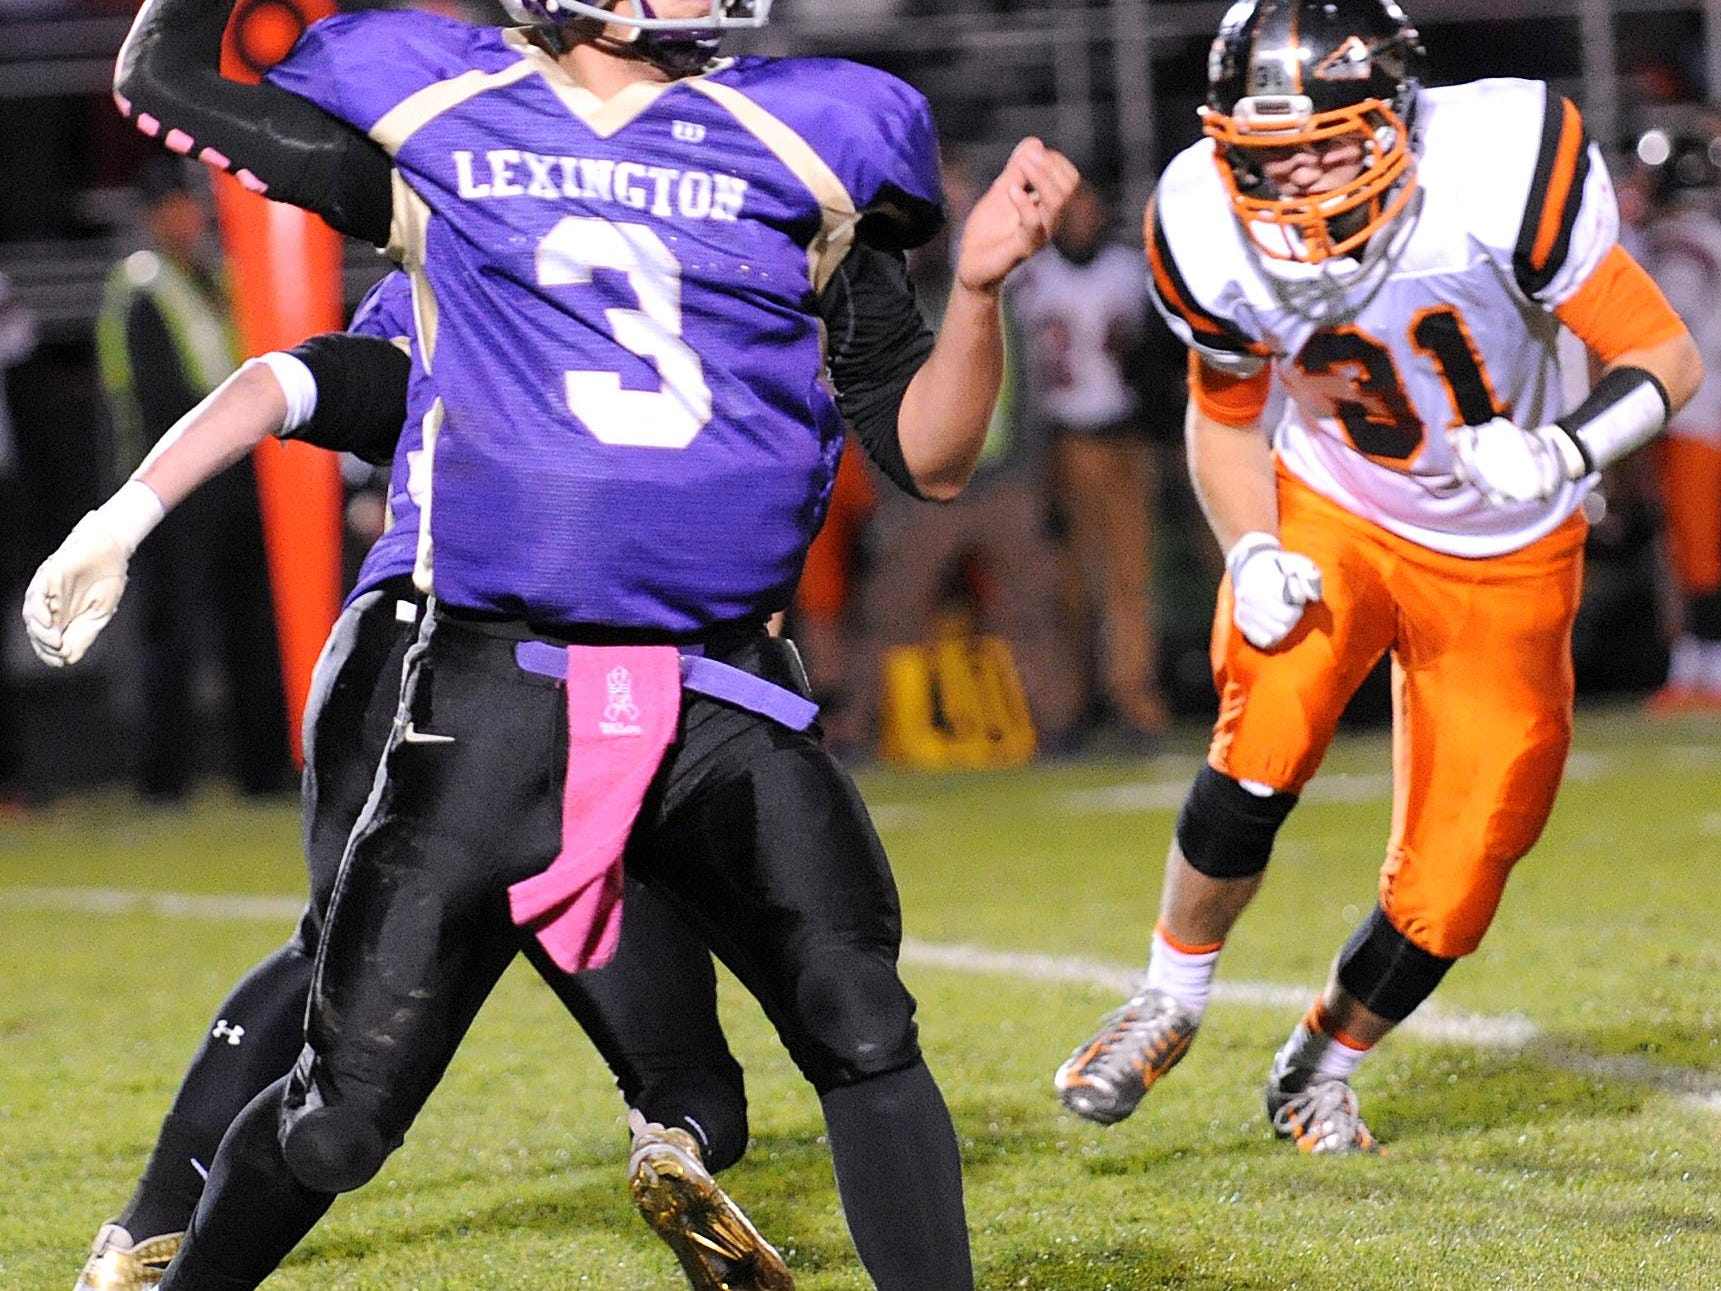 Lexington's Joseph Vore passes the ball Friday night during their game against Ashland.